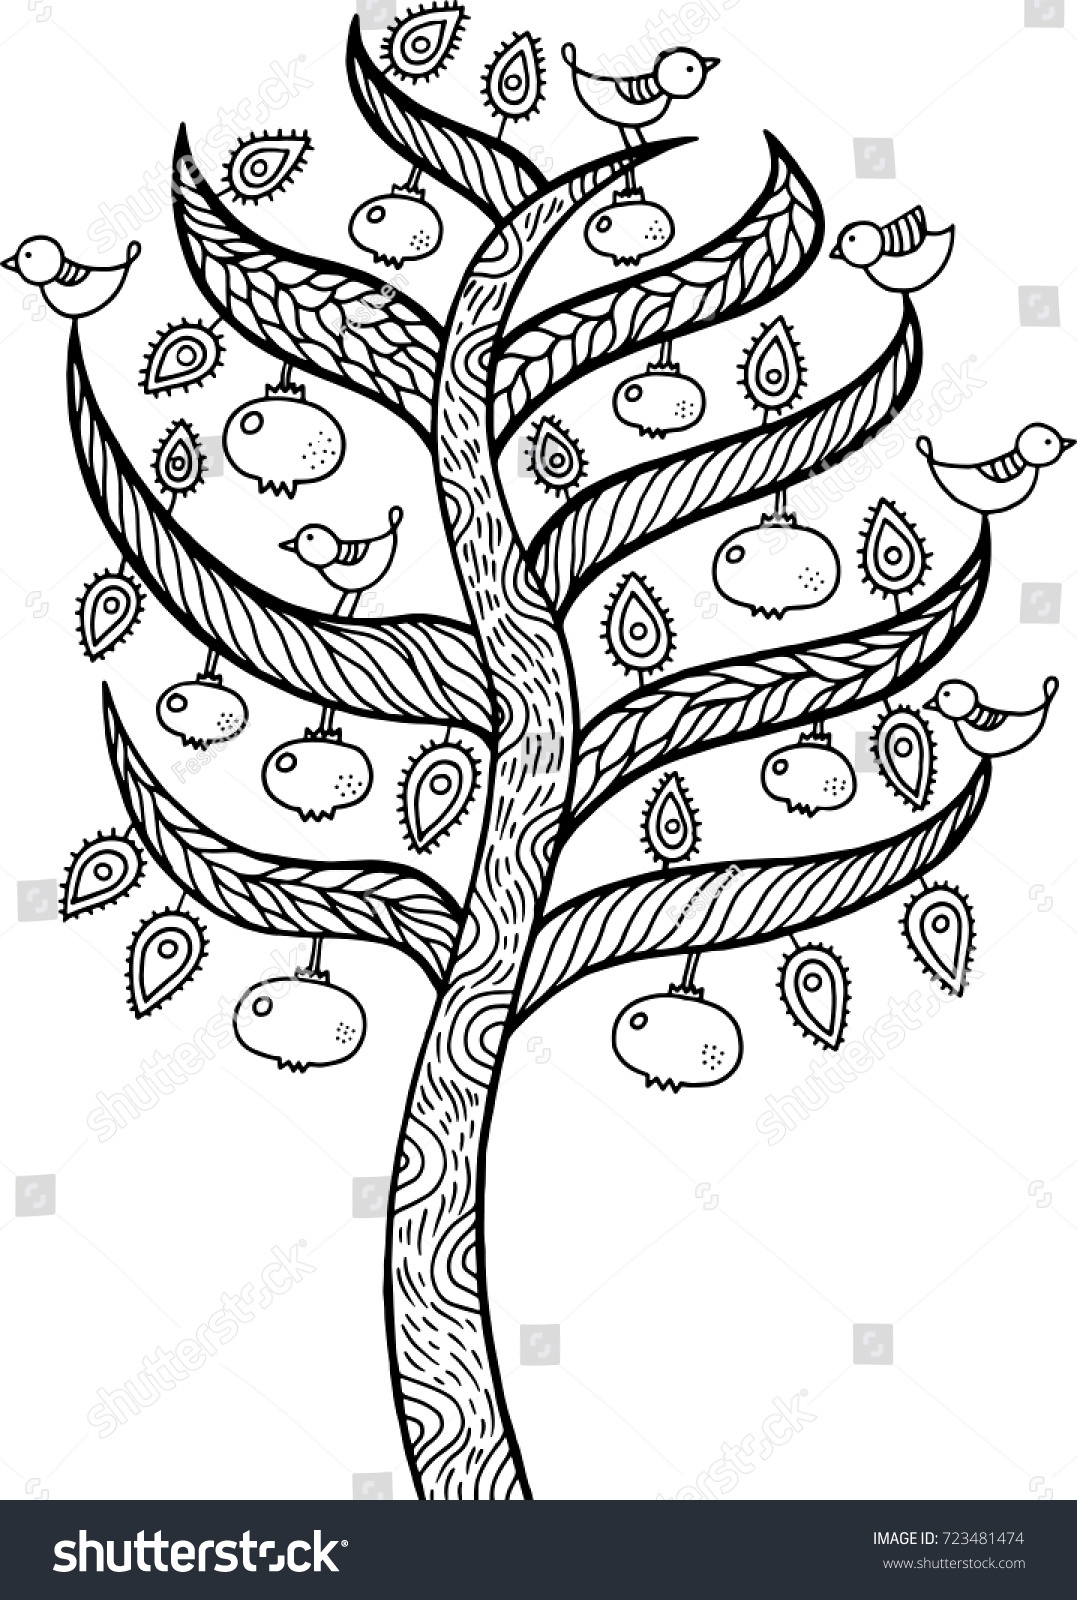 Pomegranate Tree Kids Illustration Outline Doodle Stock Vector